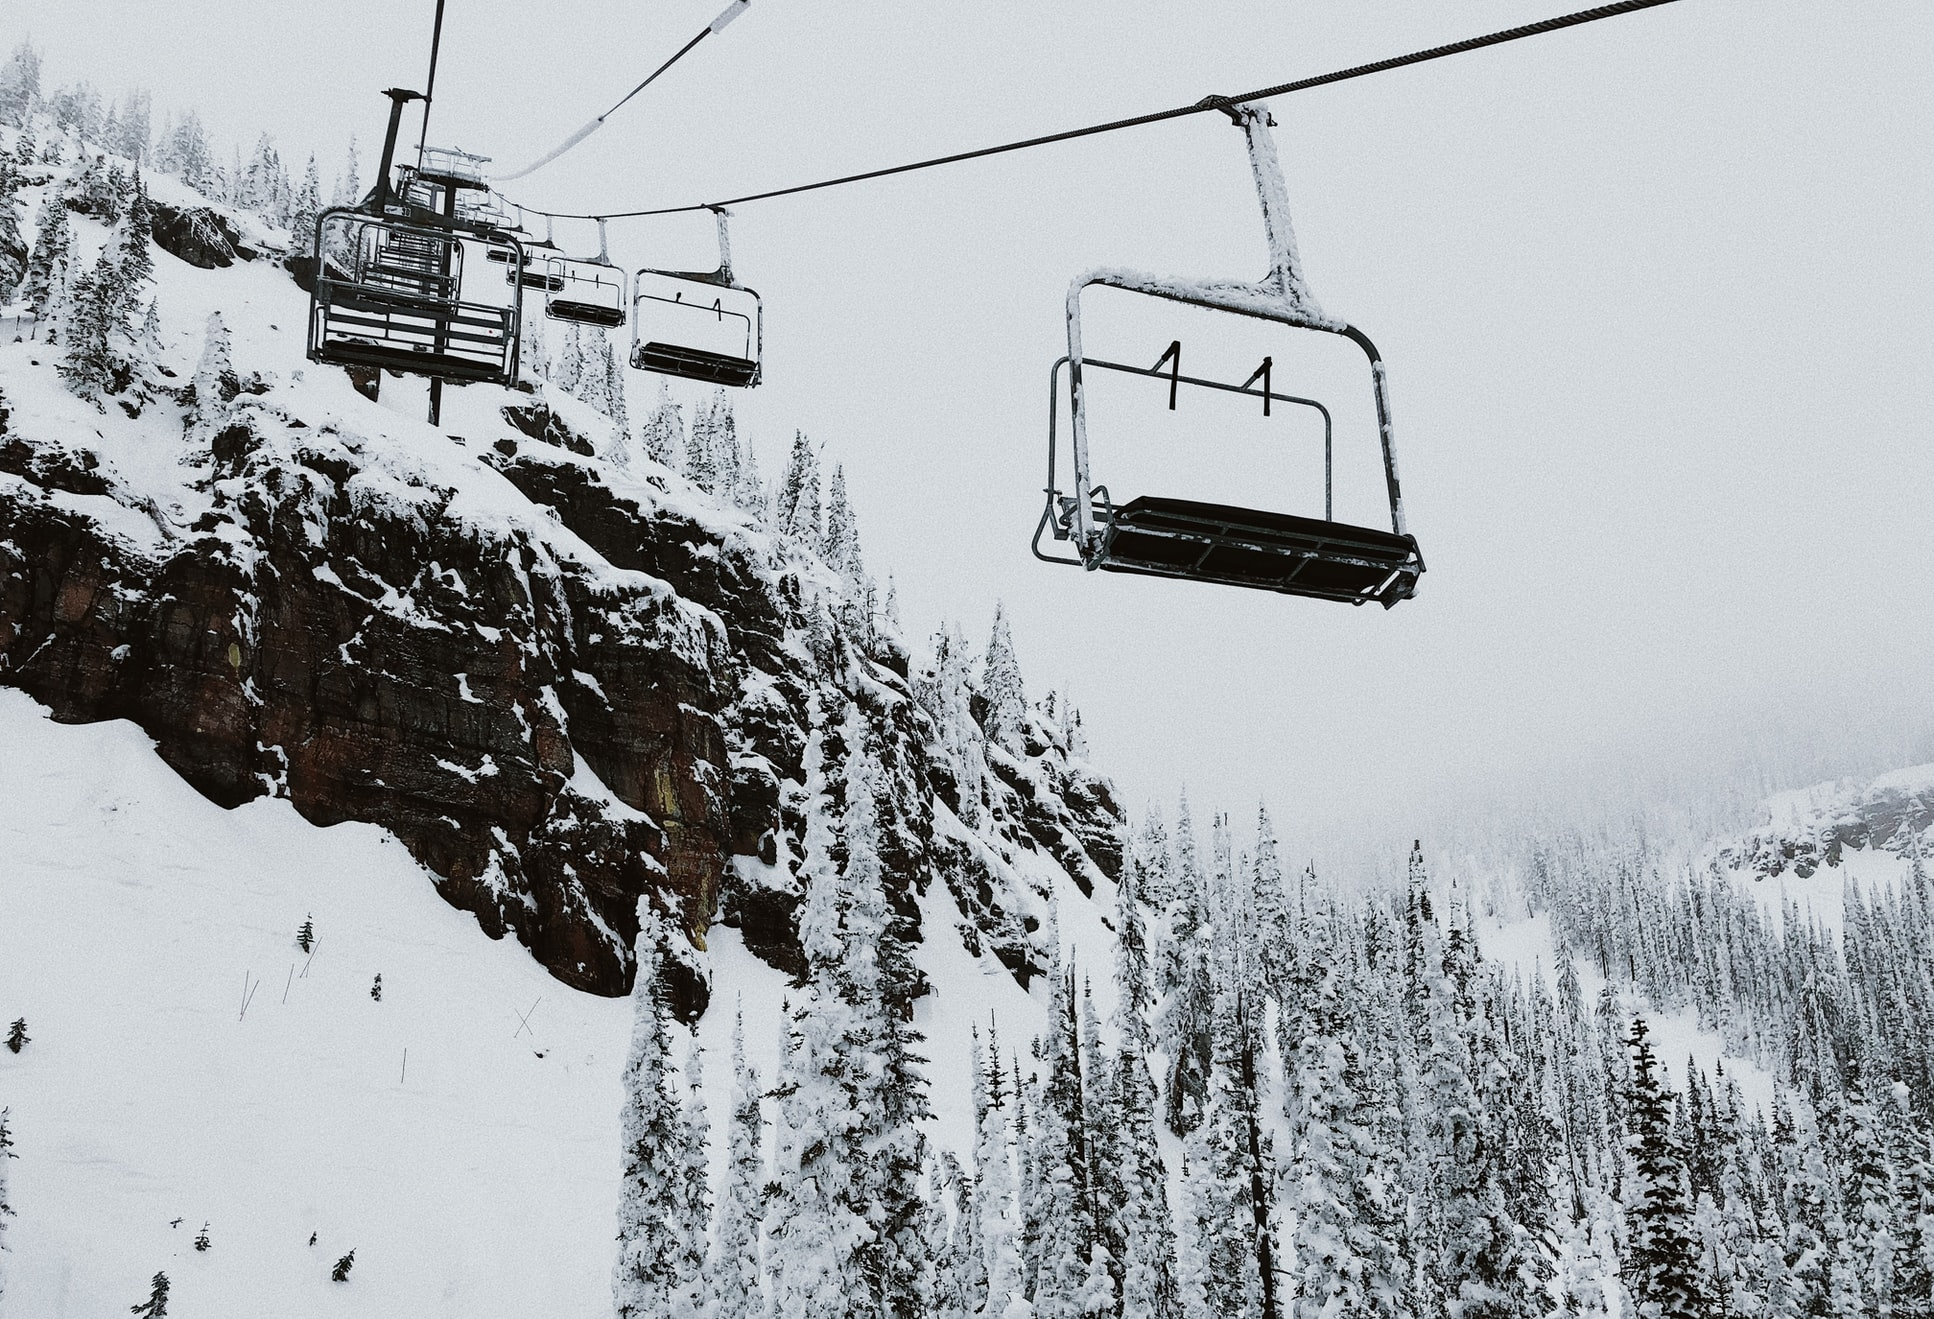 ski lifts over snowy slopes in whitefish, montana